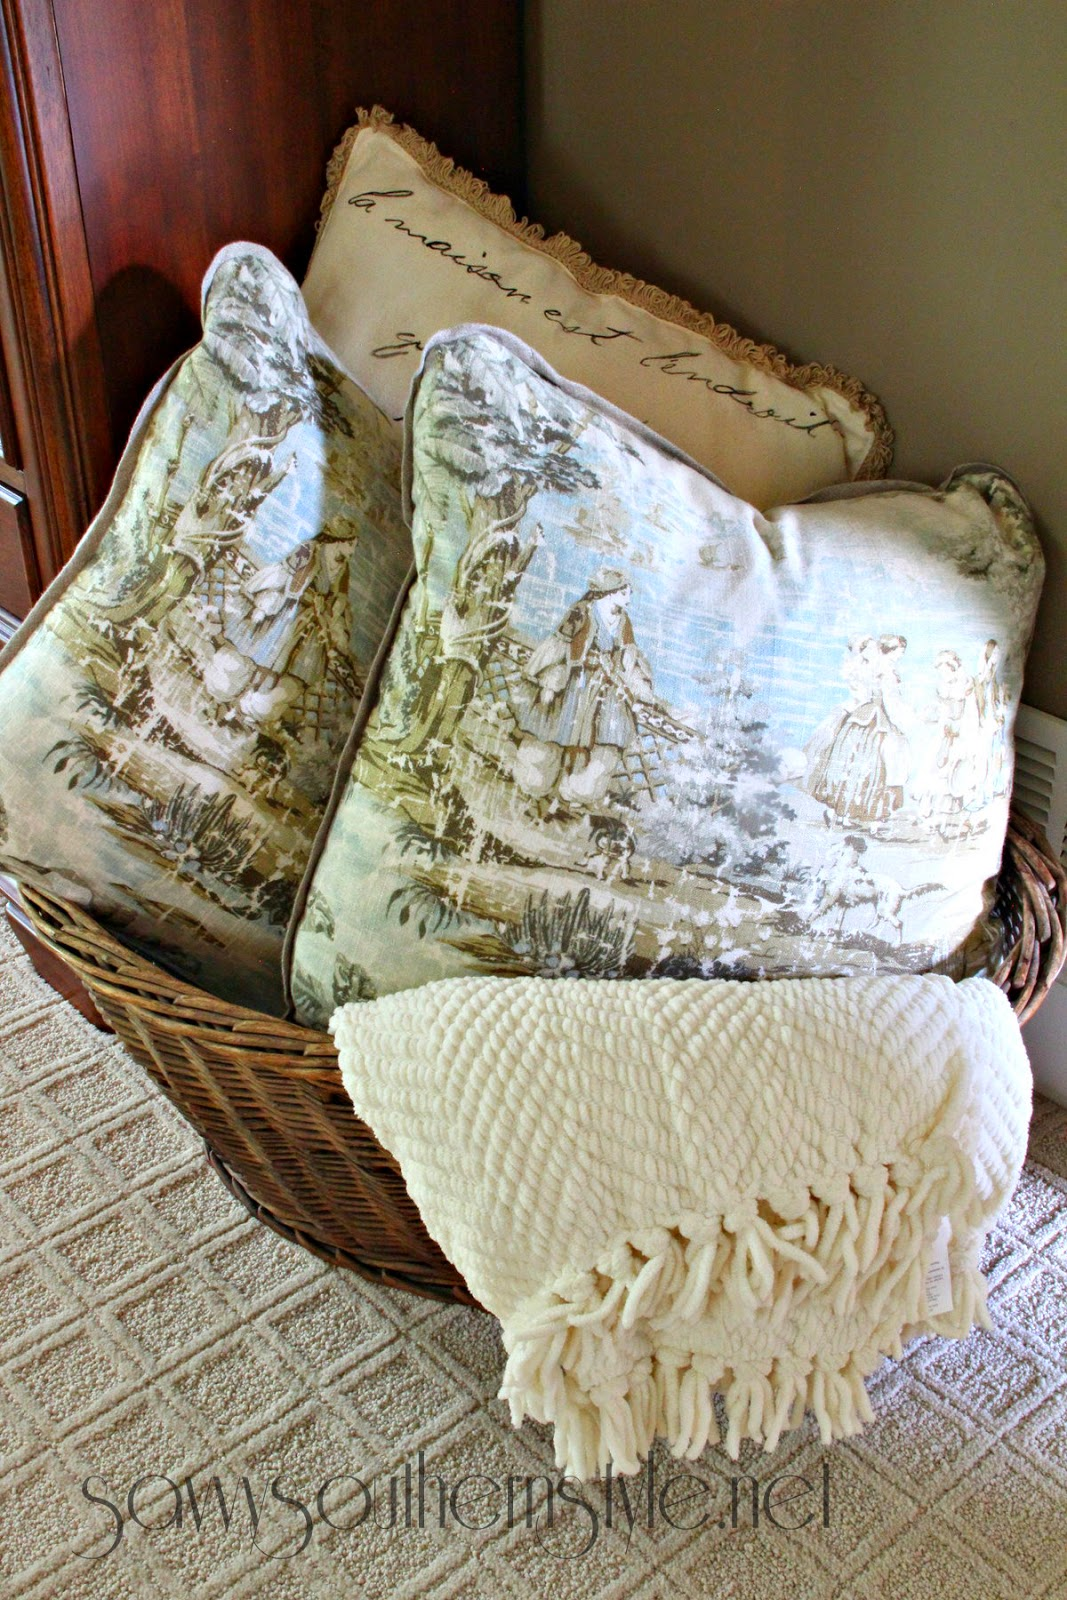 Savvy southern style creating french country style with for French country style